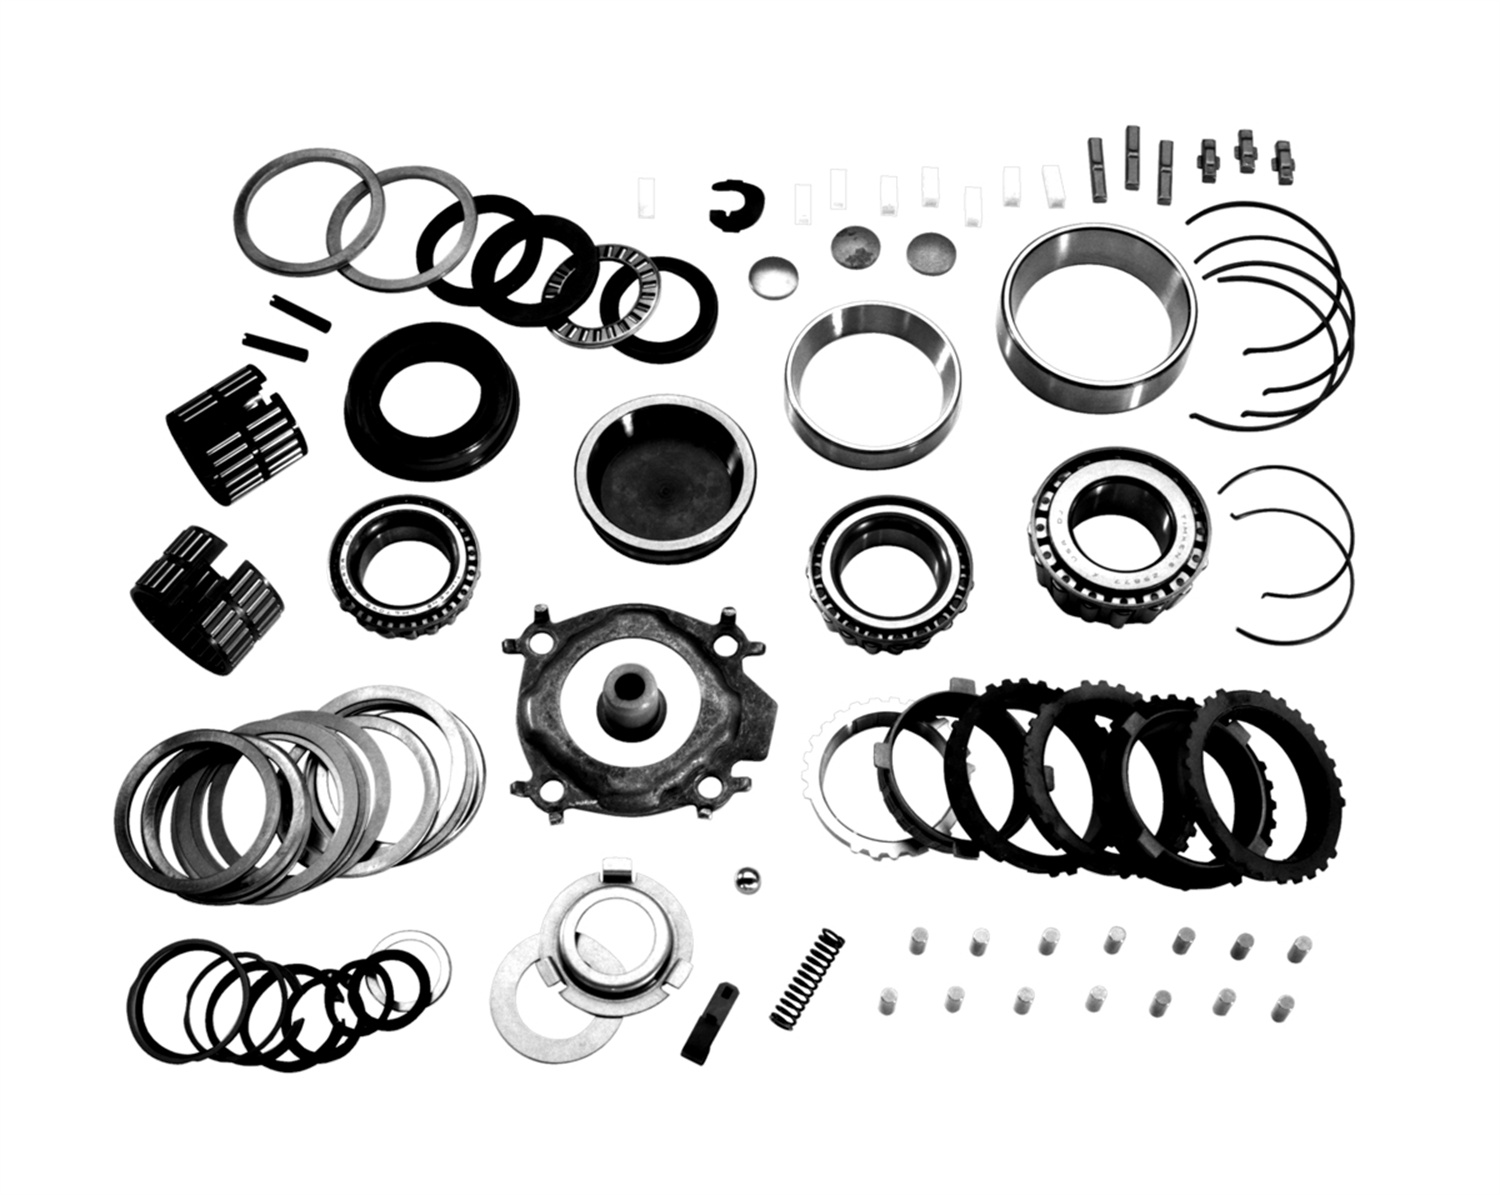 Ford Racing M-7000-A T-5 Rebuild Kit, 94 Pieces